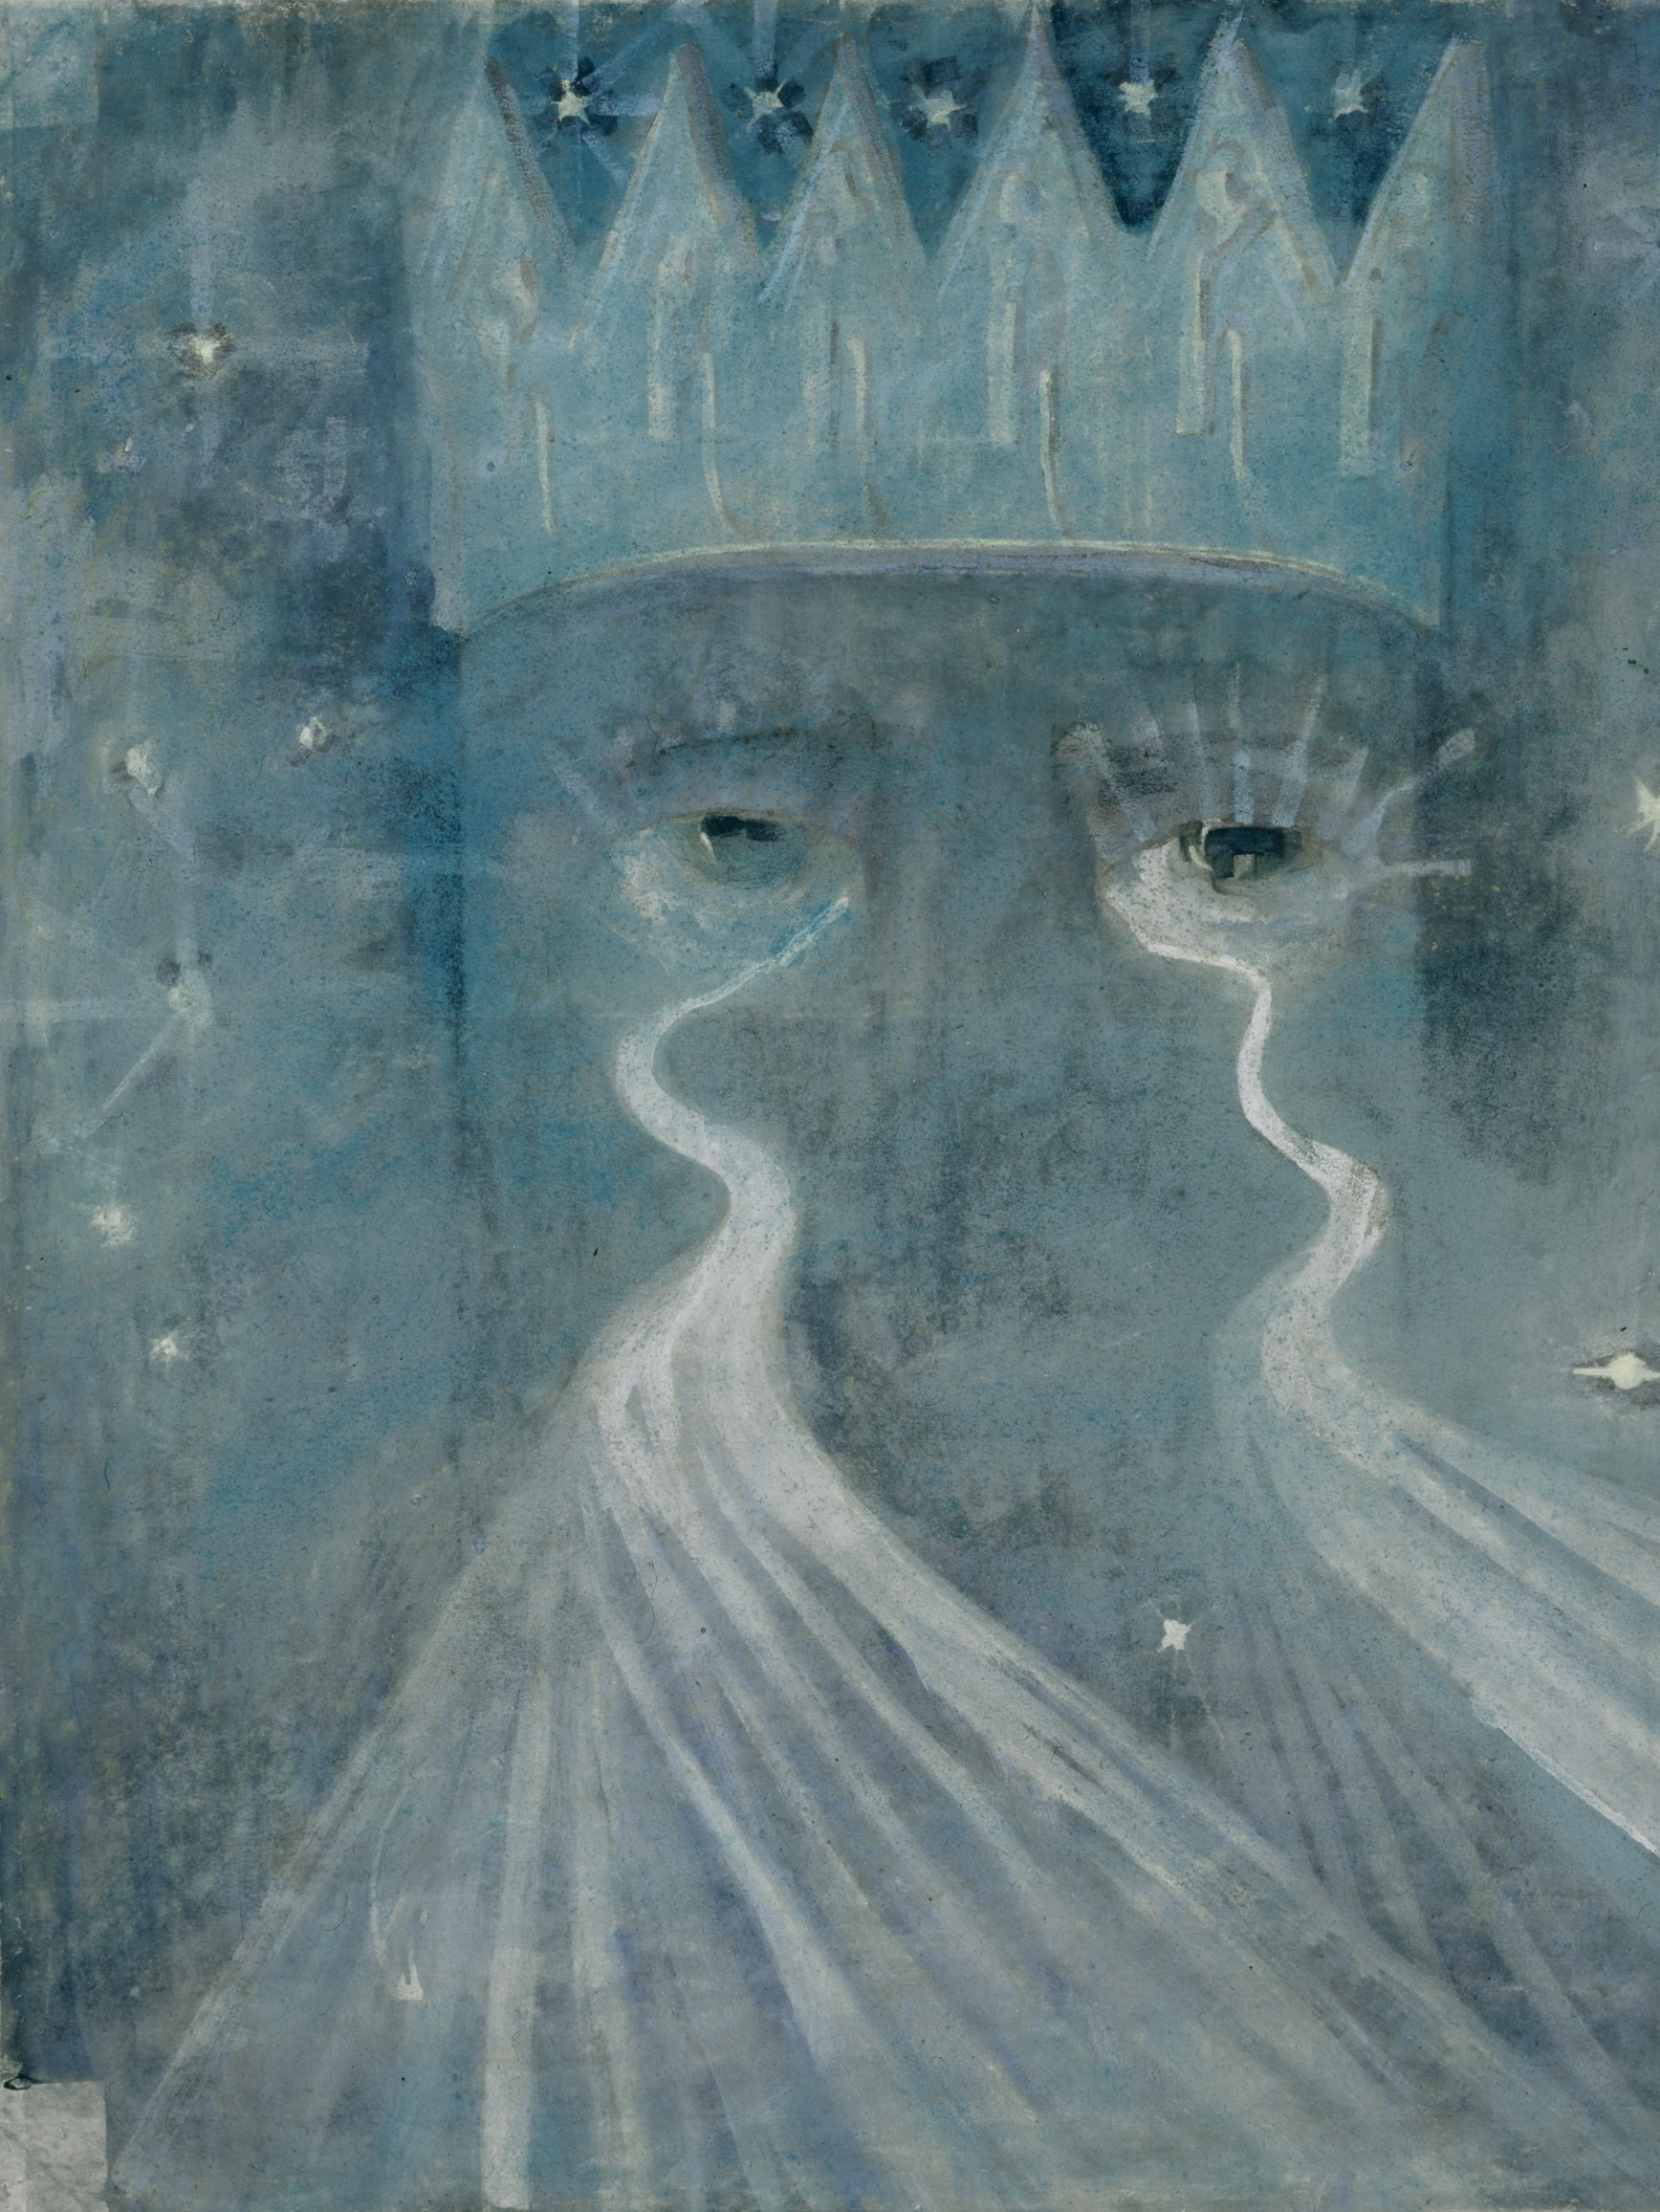 the life and history of mikalojus The art of mikalojus konstantinas ciurlionis  during his short life he composed about 400 pieces of music and created  history help.